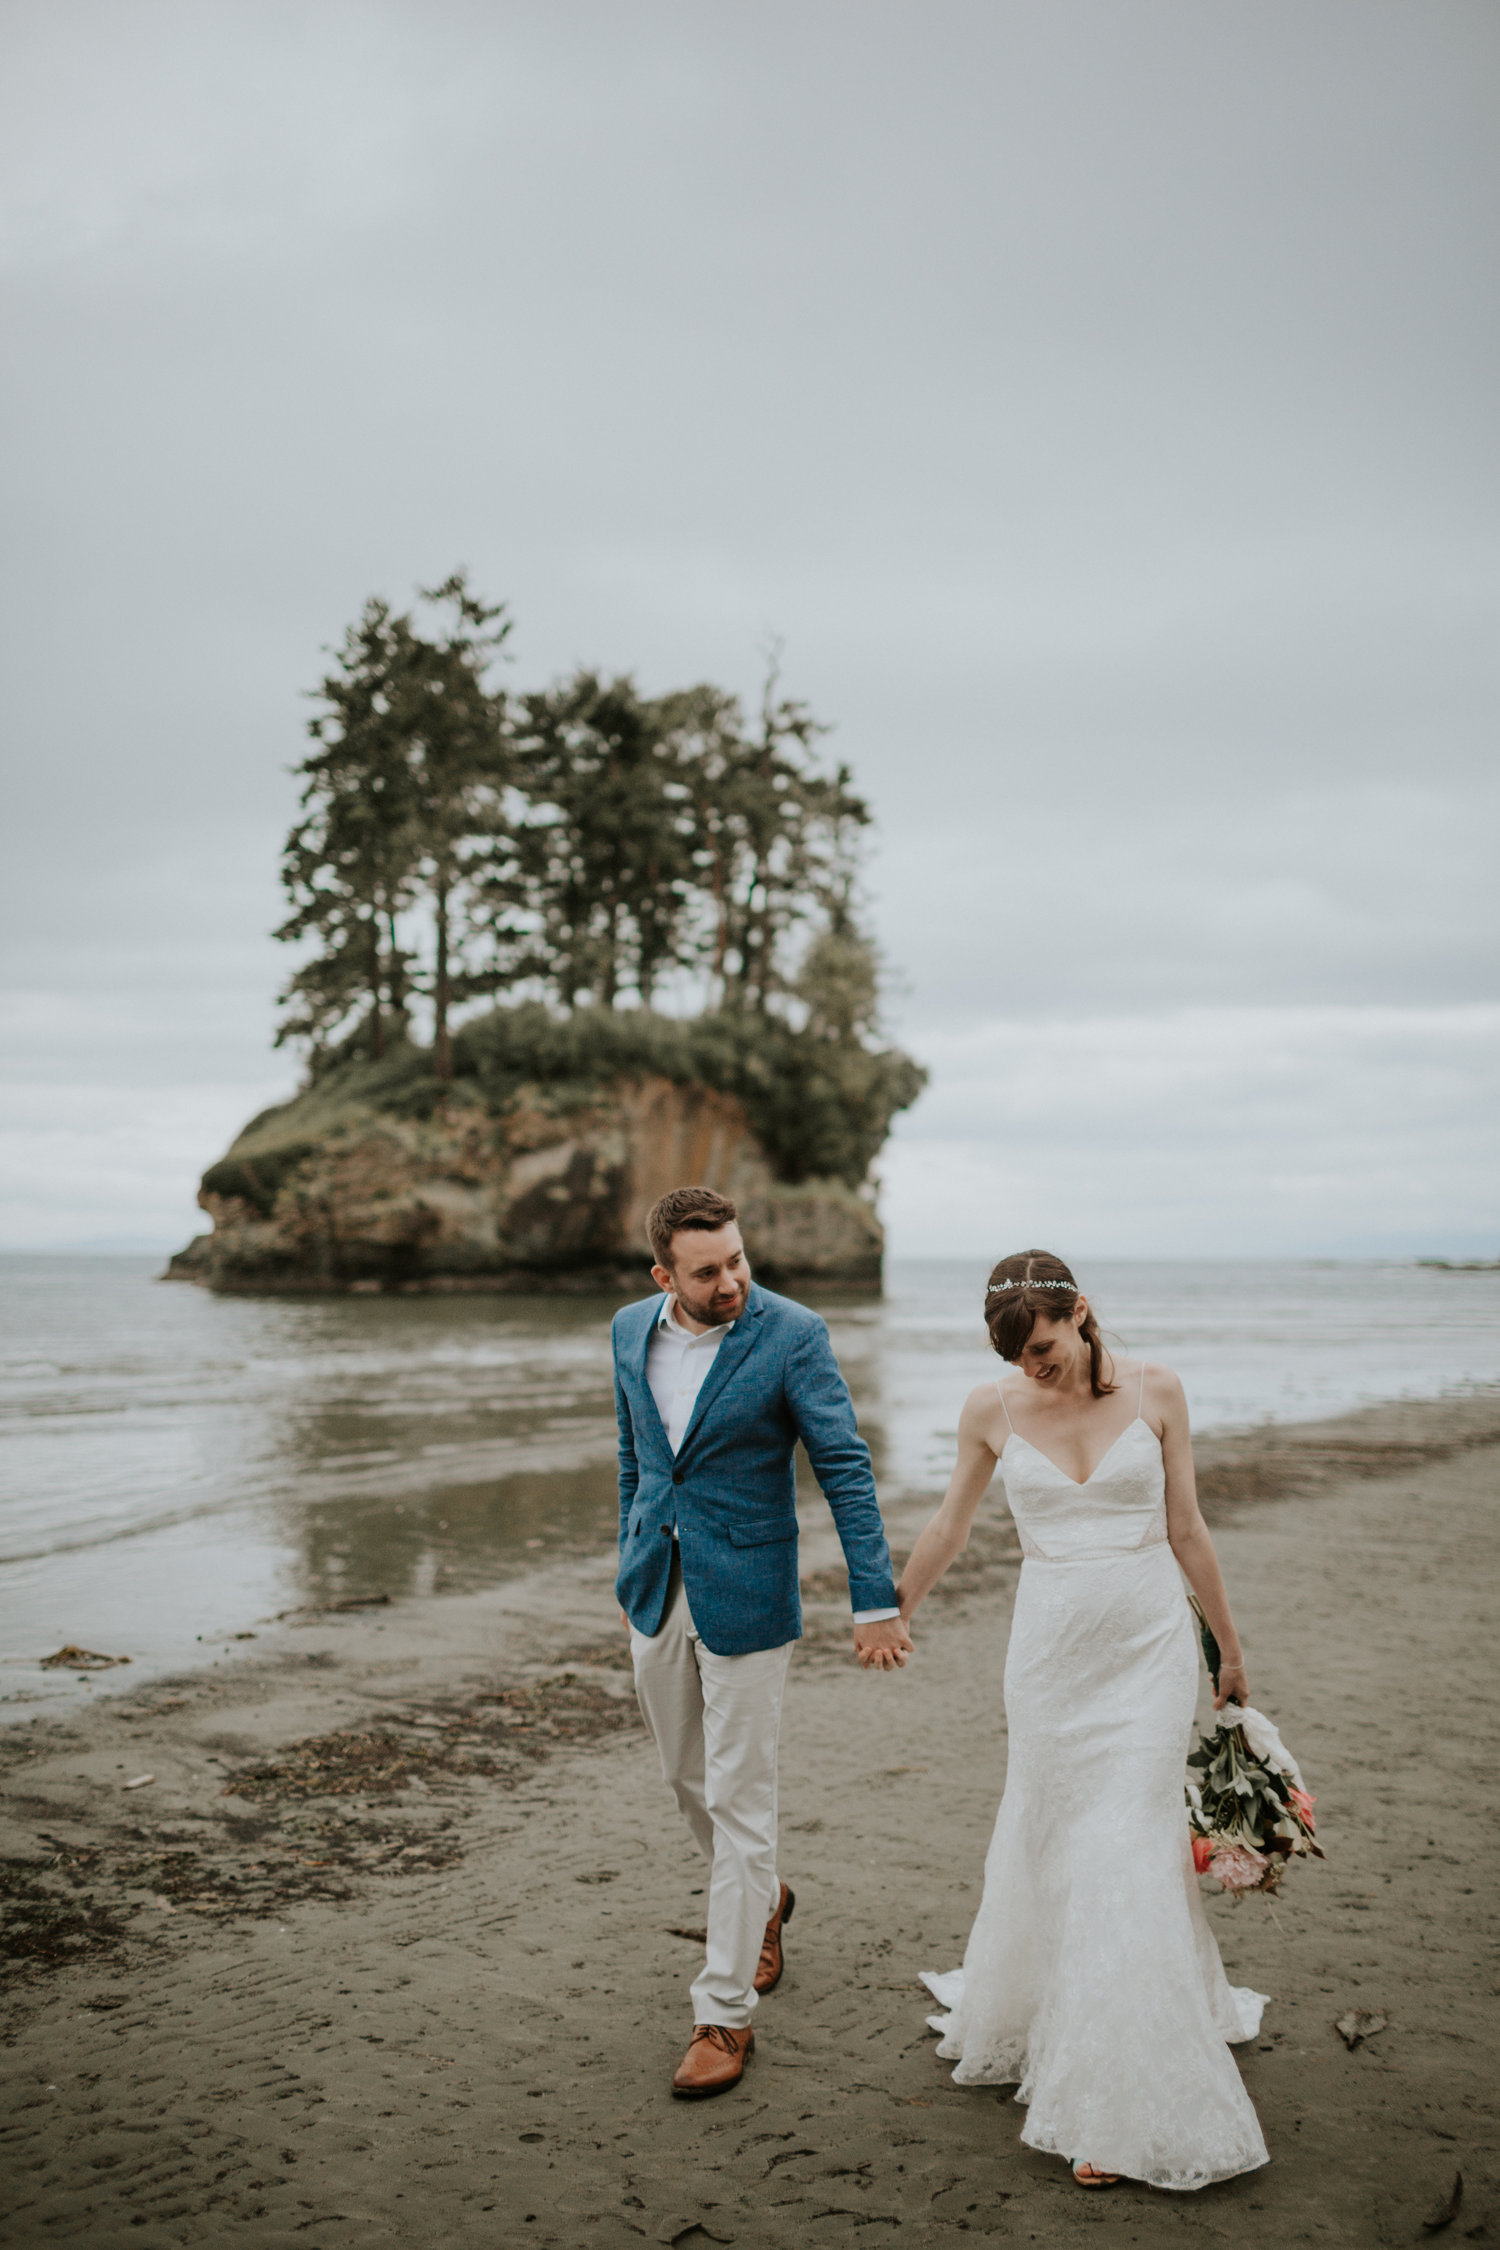 PNW-elopement-wedding-engagement-olympic+national+park-port+angeles-hurricane+ridge-lake+crescent-kayla+dawn+photography-+photographer-photography-kayladawnphoto-300.jpg